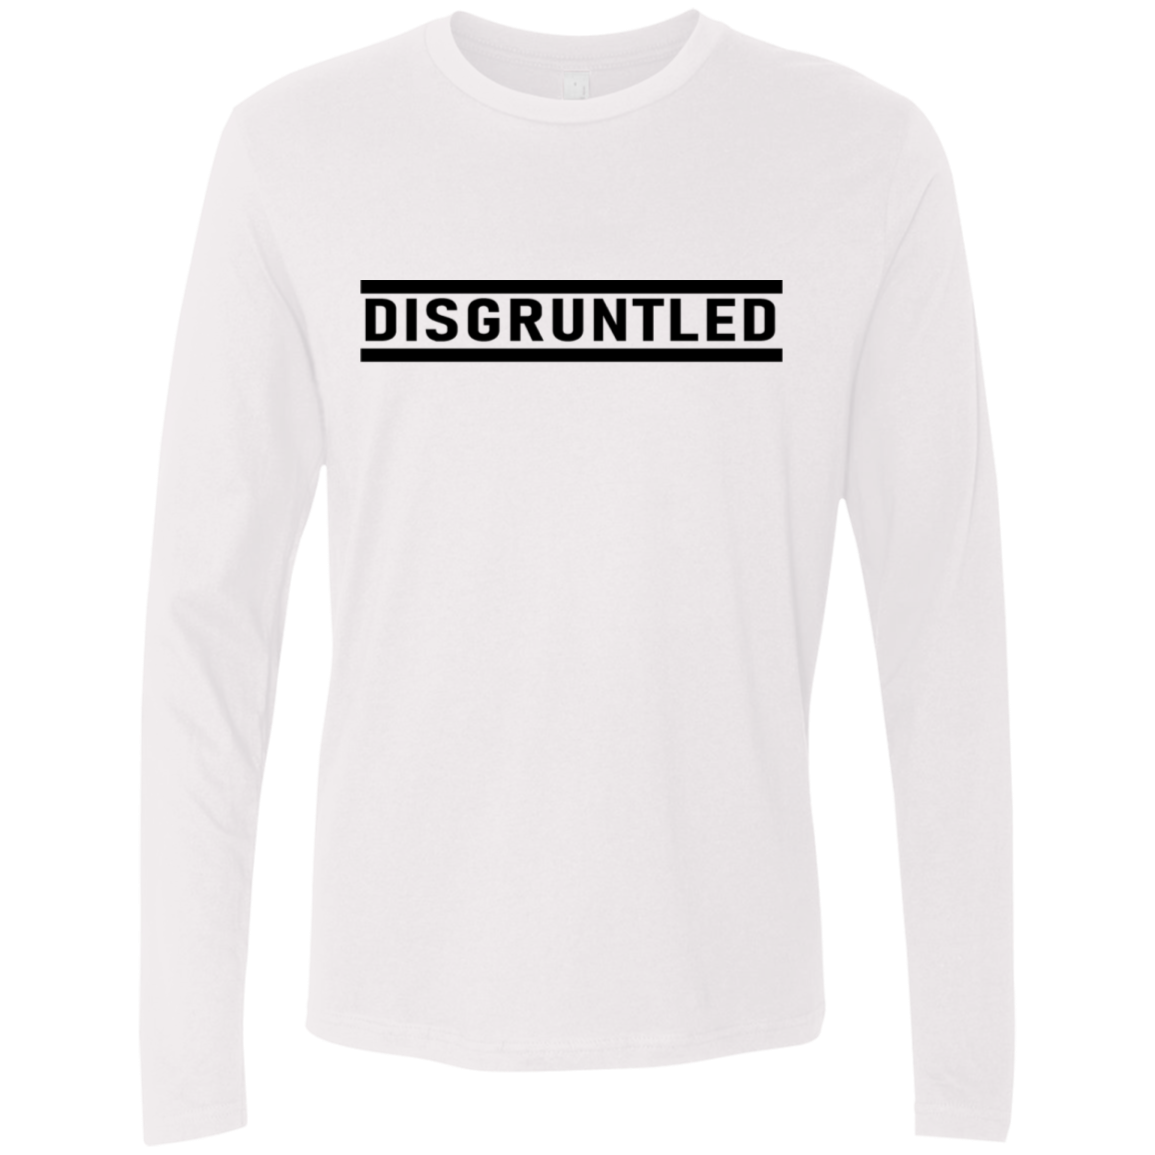 Disgruntled Men's Long Sleeve Tee